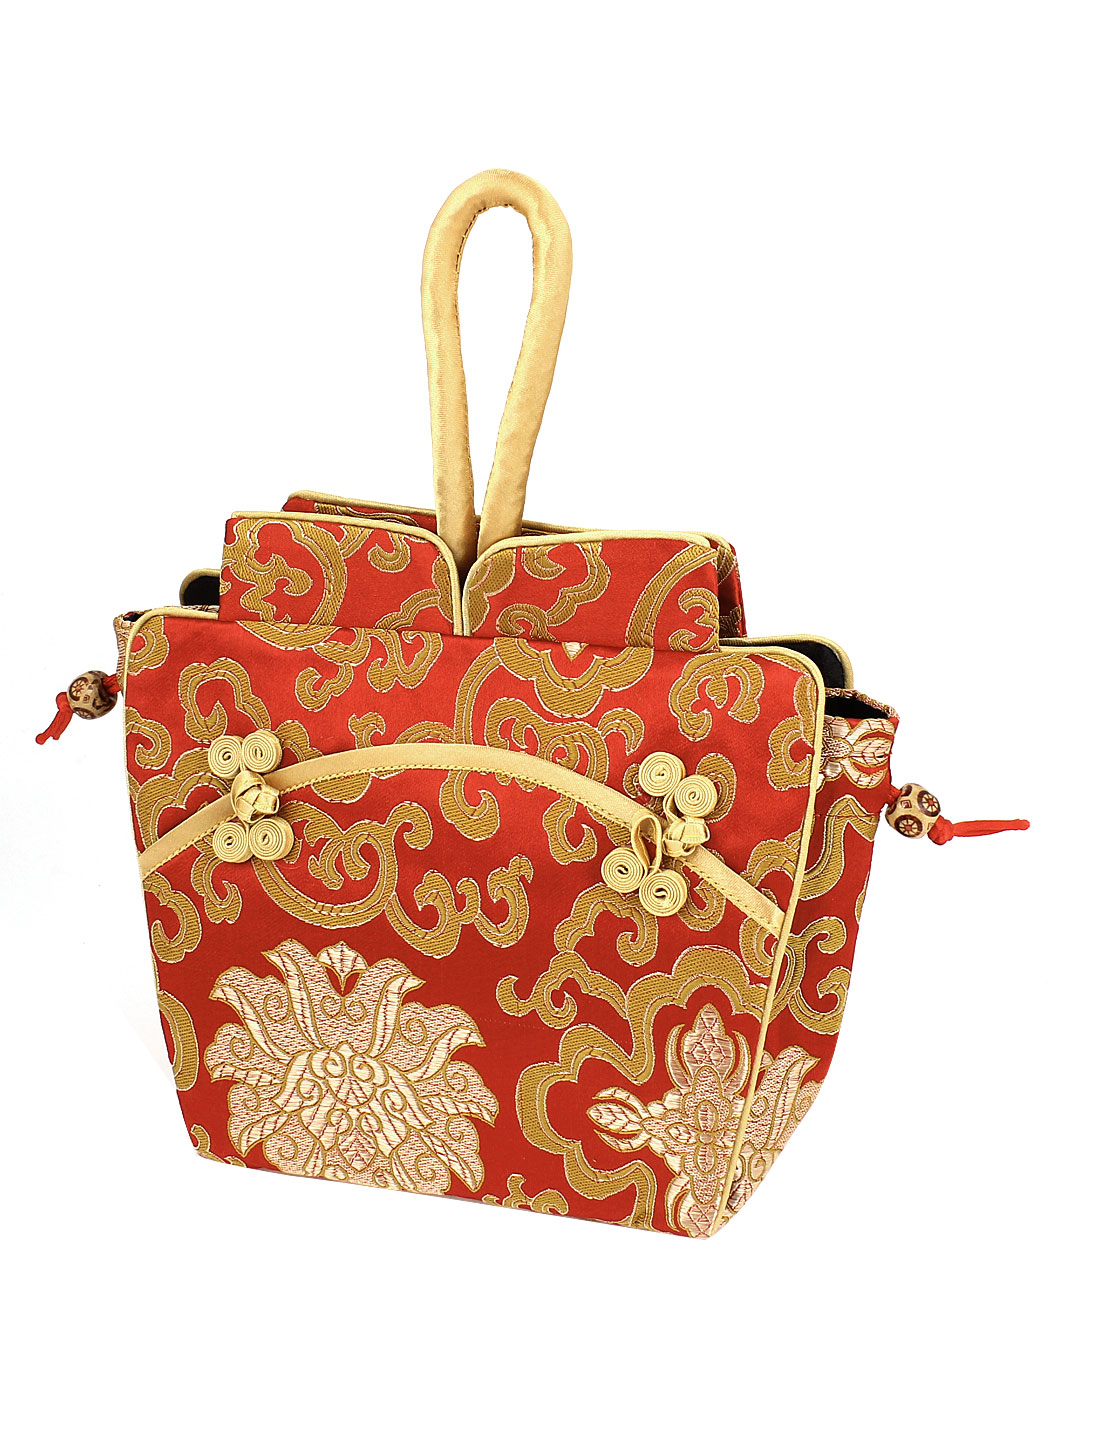 Chinese Classical Elements Decor Red Brocade Handbag Tote Bag for Lady Women